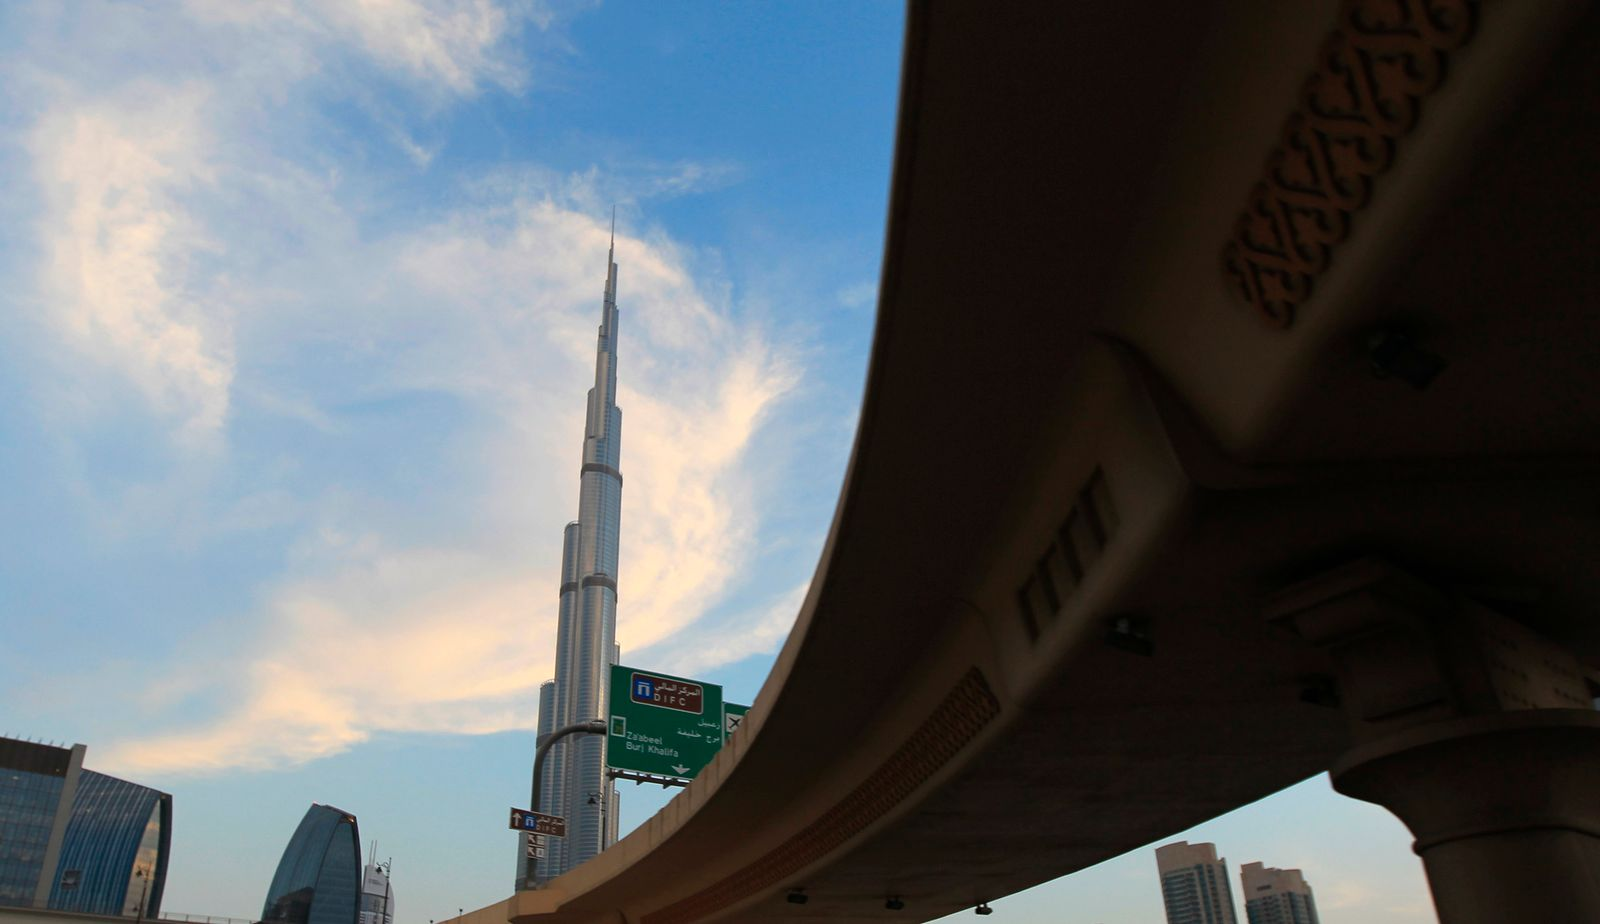 The Burj Khalifa is seen from an interchange on Sheikh Zayed road in Dubai